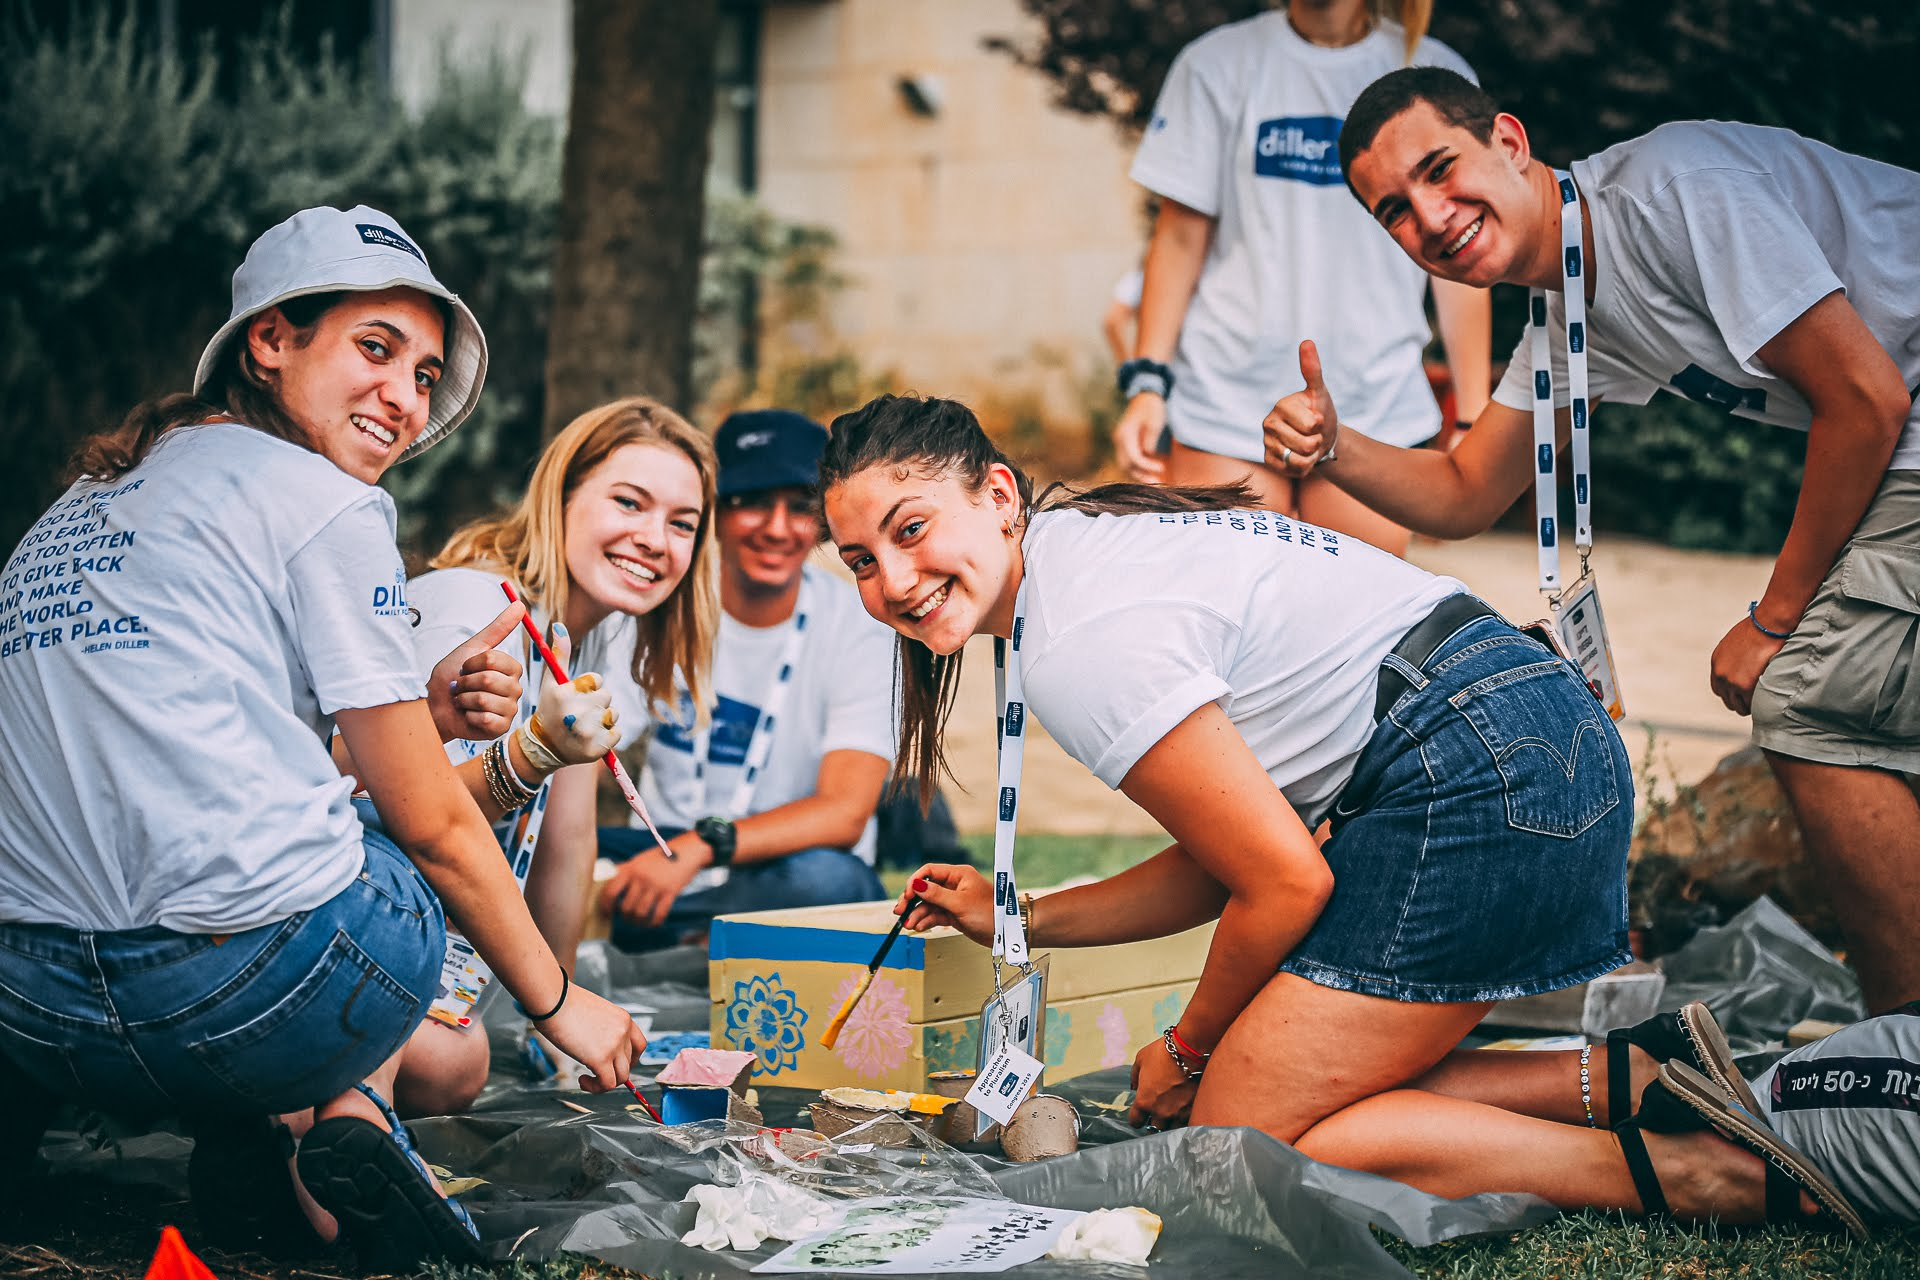 TIKKUN OLAM - Fellows participate in community service projects in Miami throughout the fellowship year and have the opportunity to apply for grant funding to support Impact projects close to their hearts.